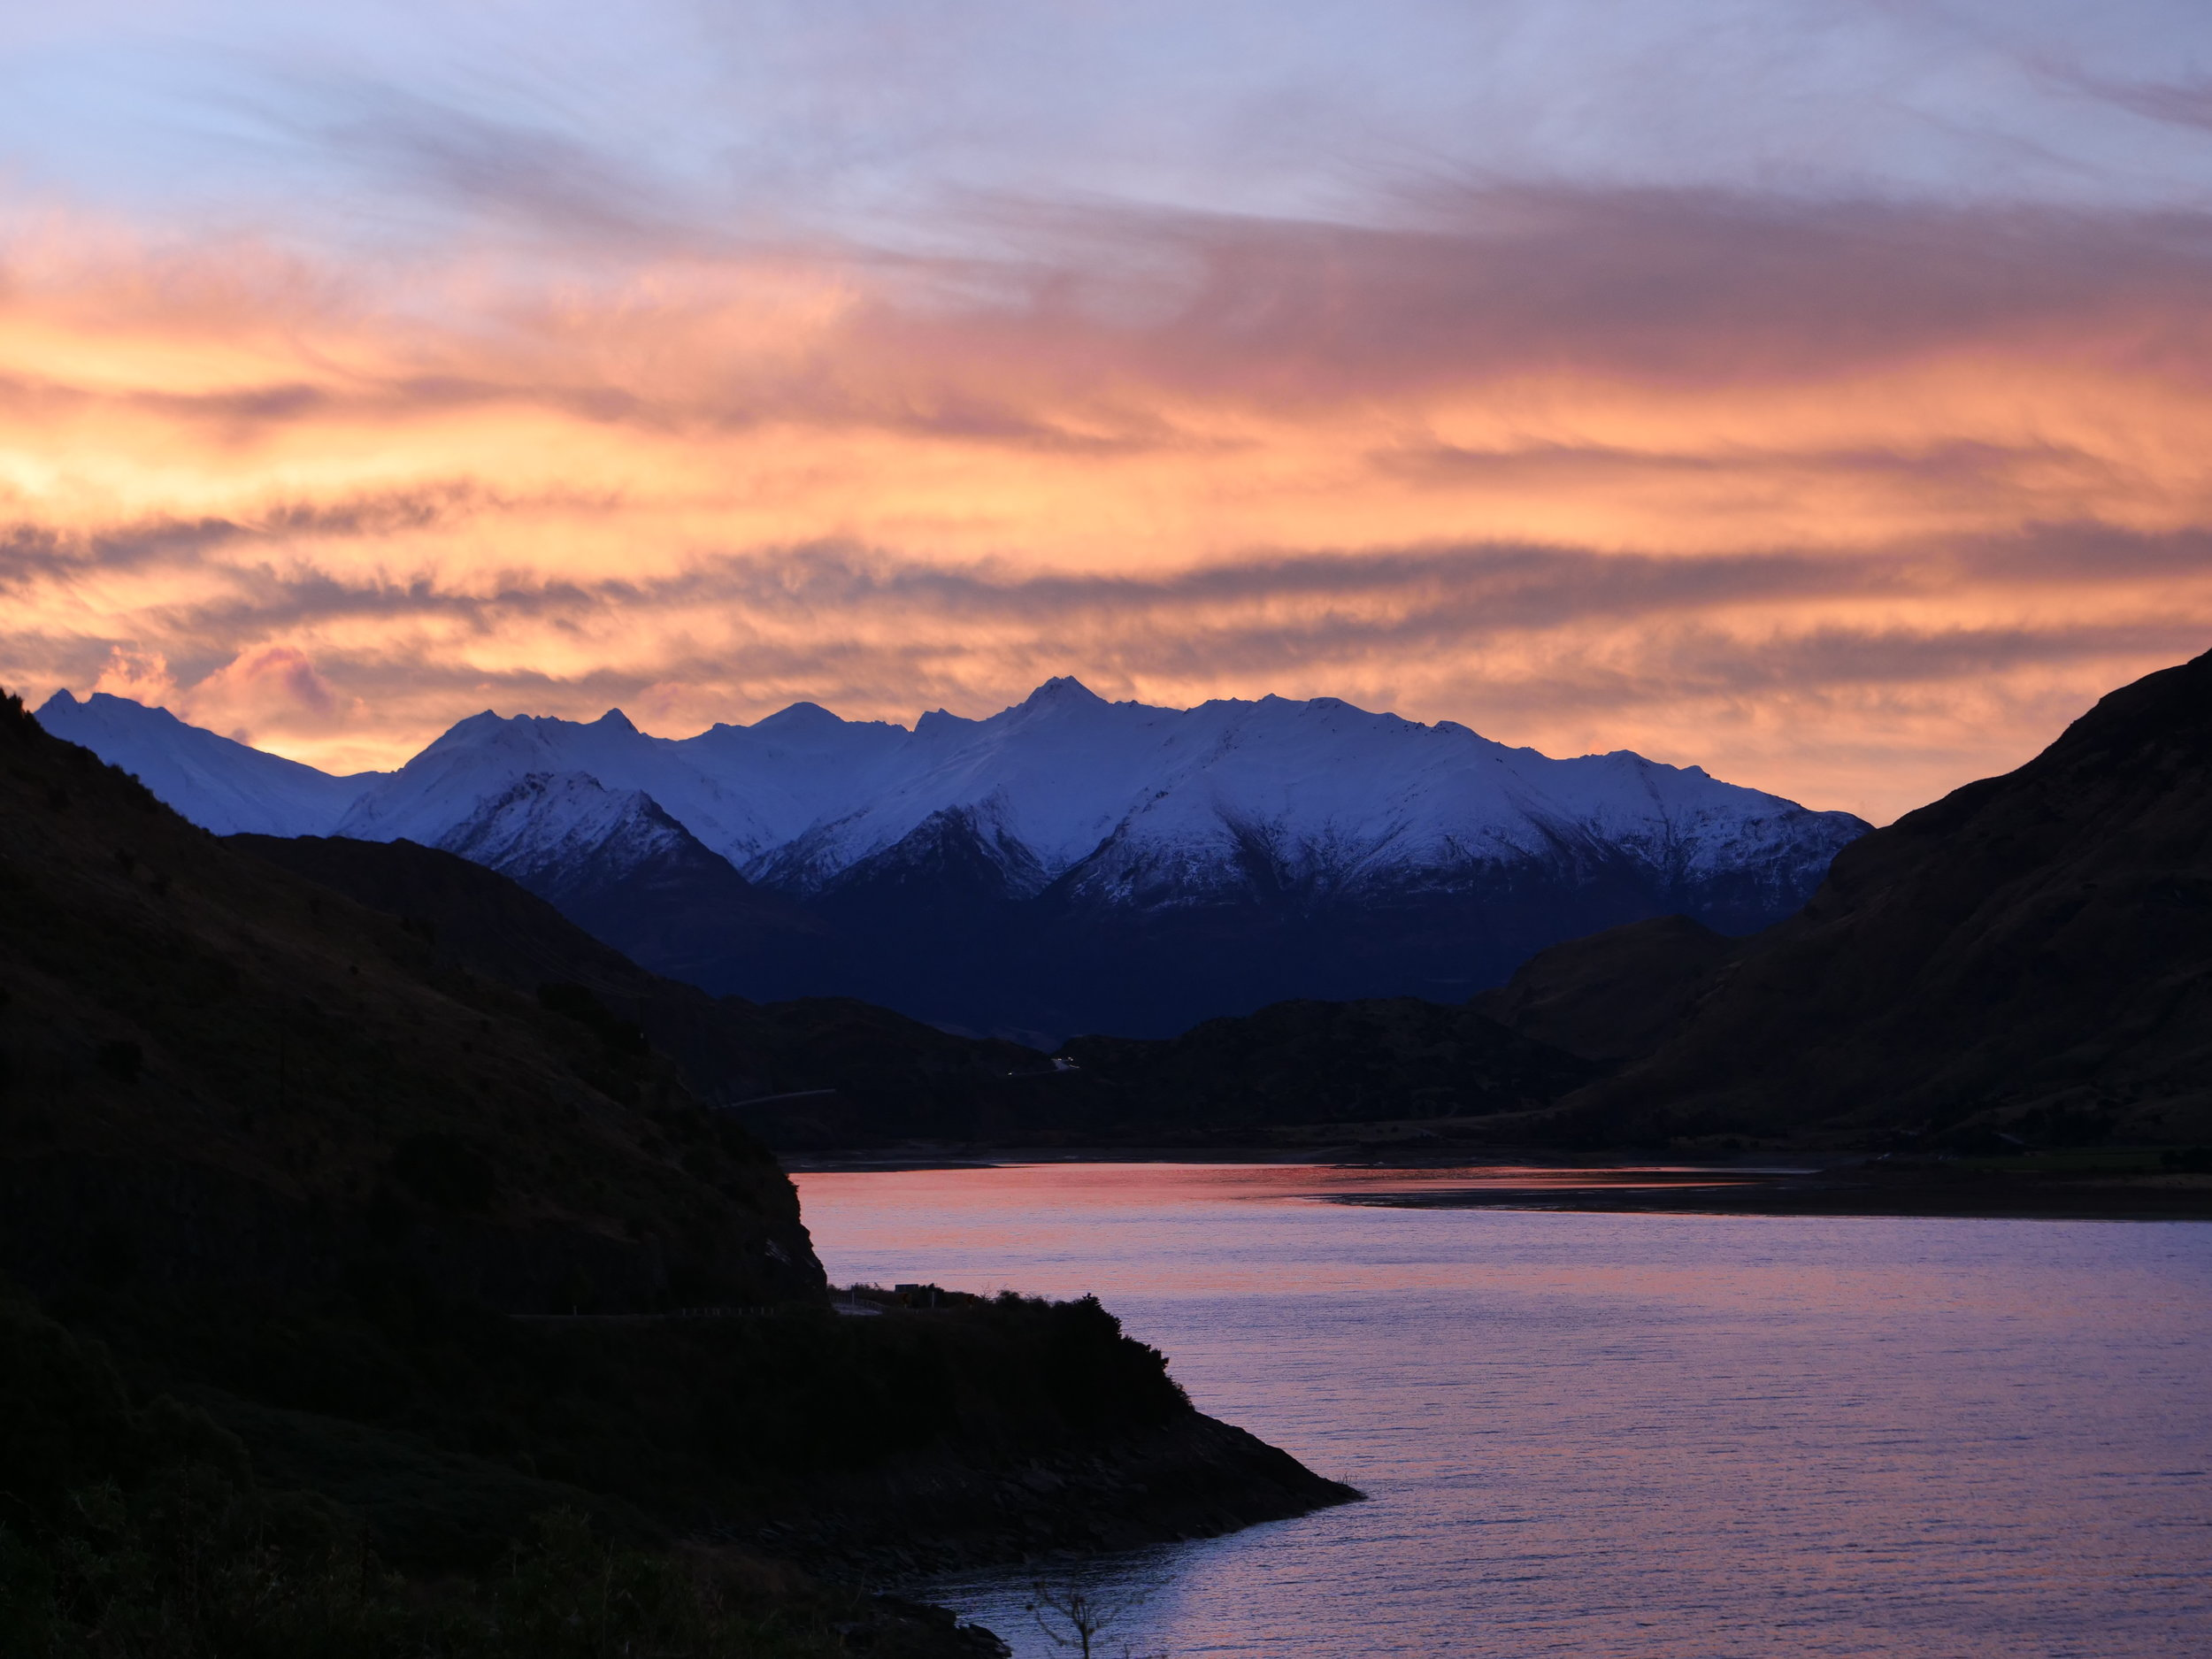 Sunset over Lake Hawea